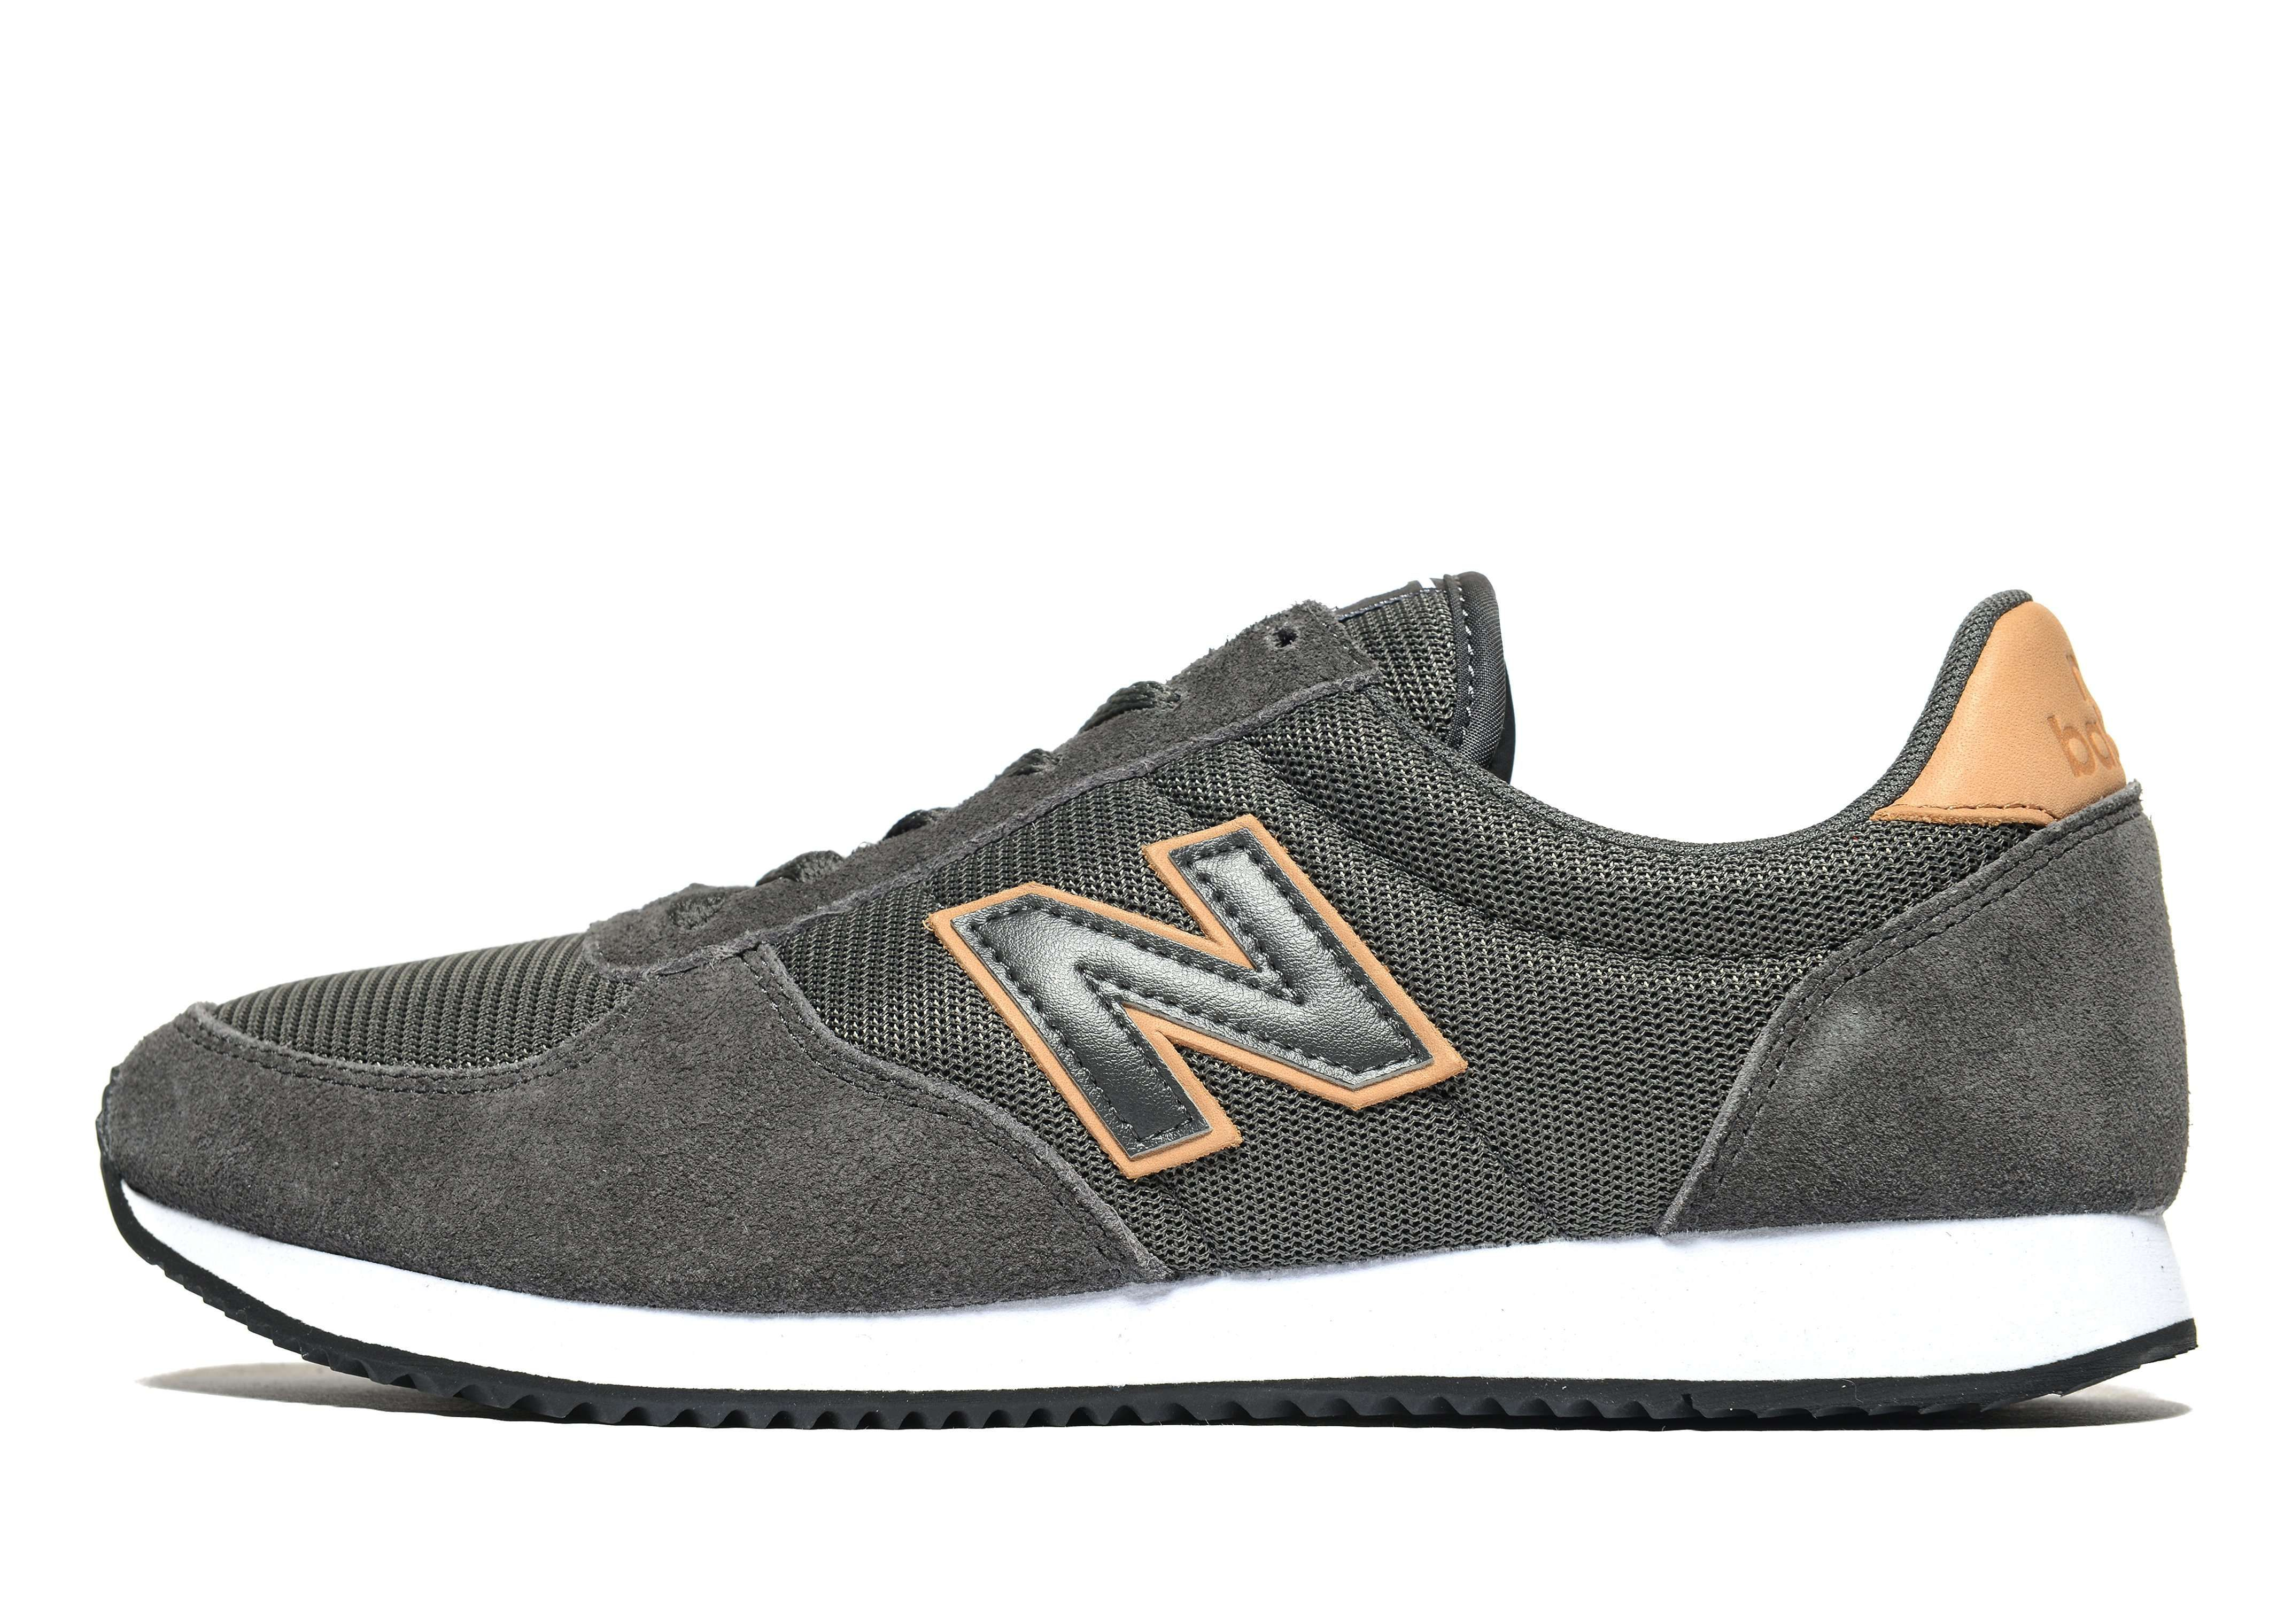 New Balance 220 Shop online for New Balance 220 with JD